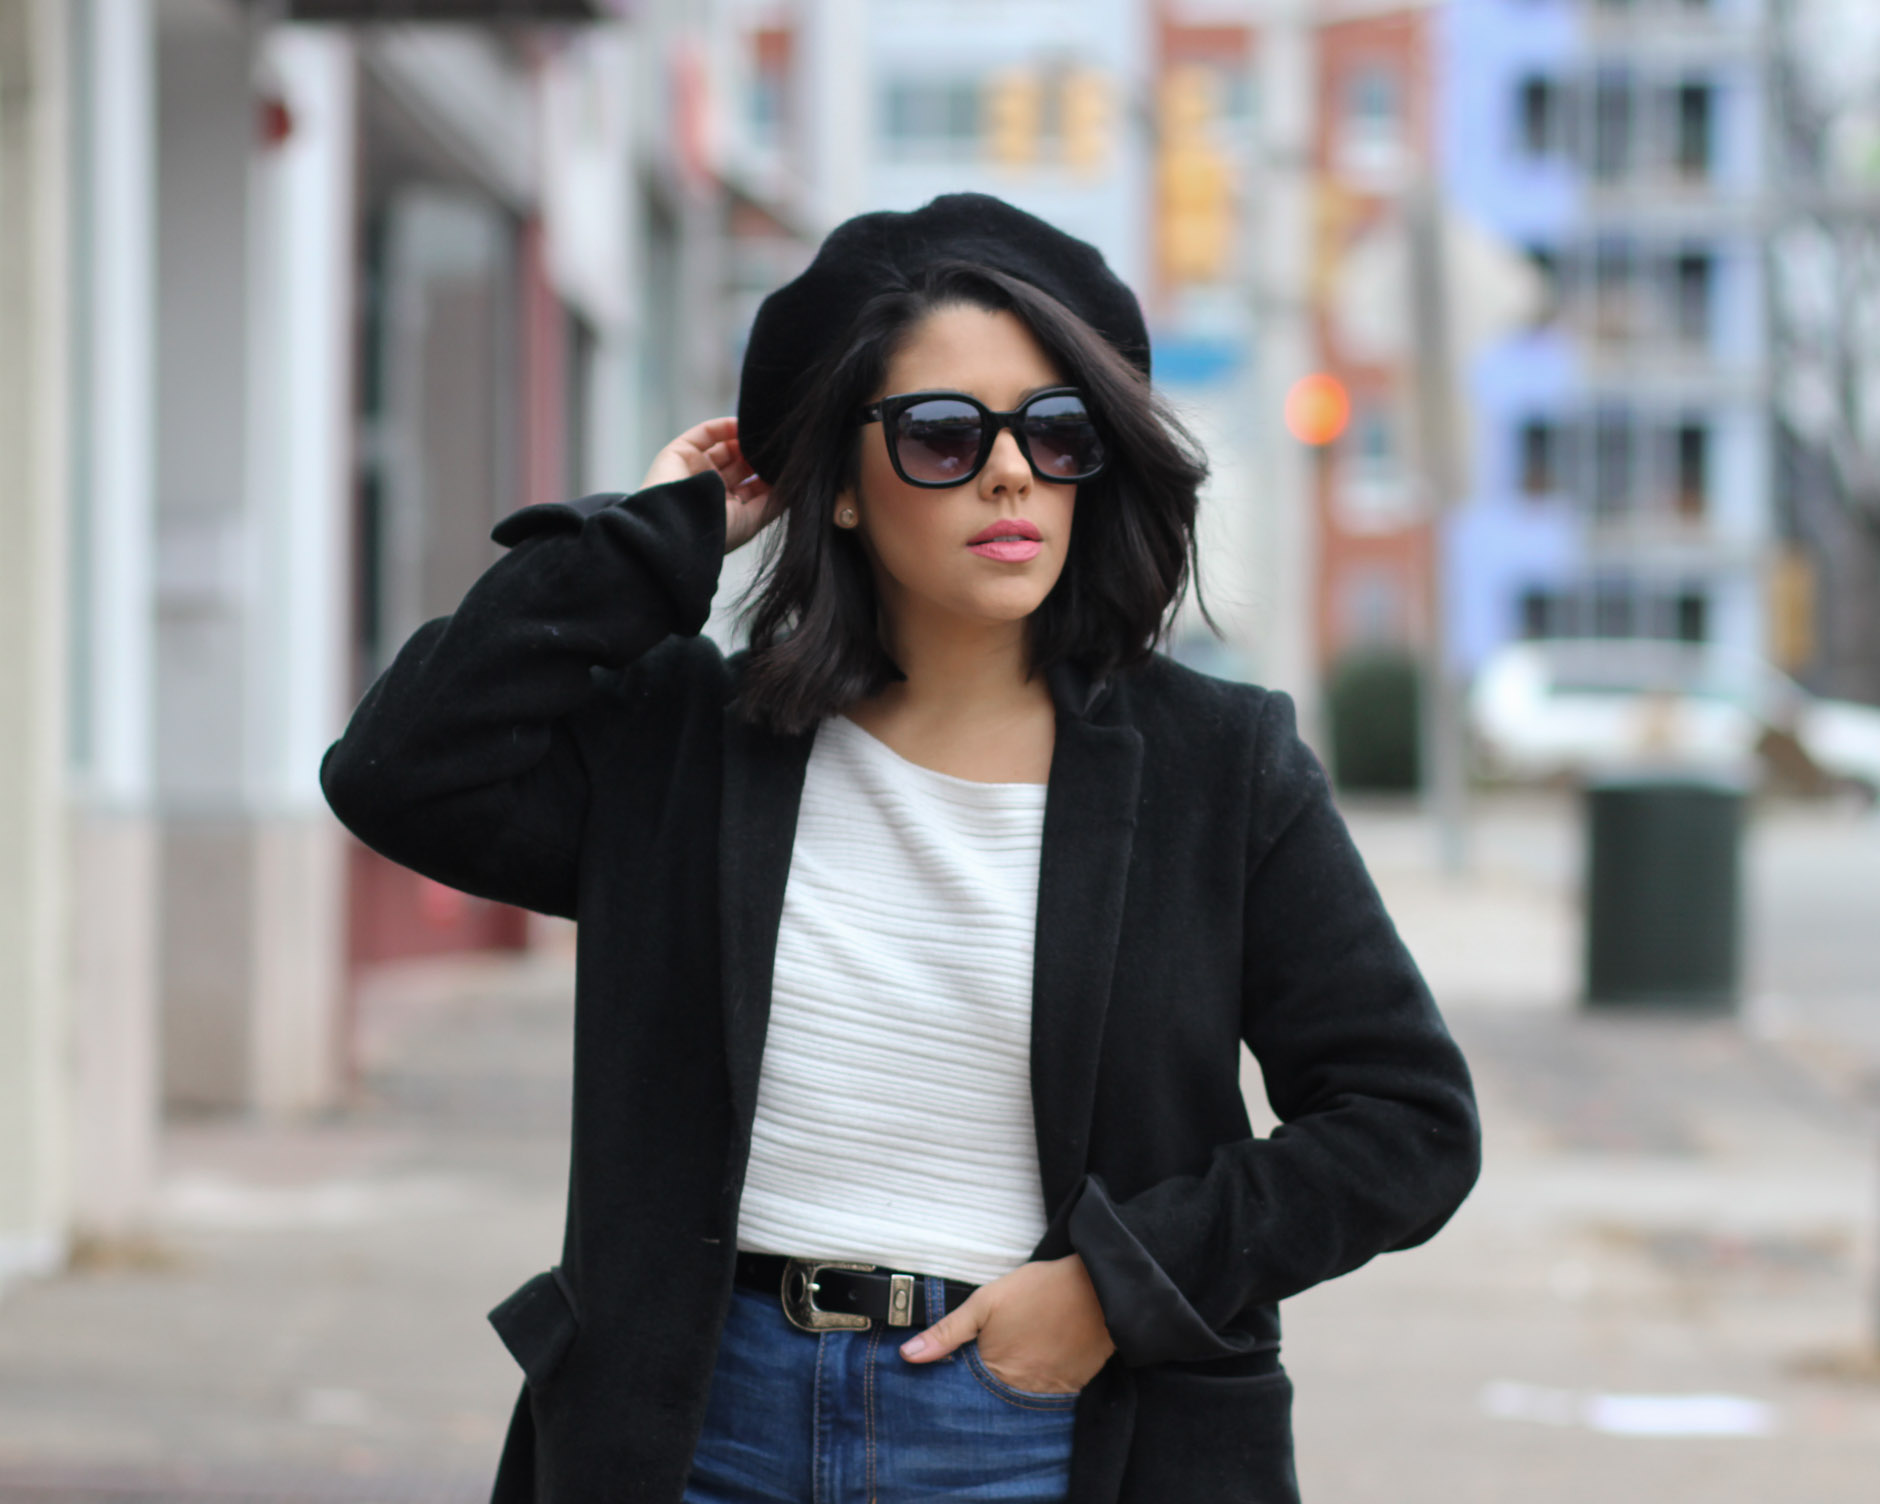 lifestyle blogger naty michele wearing a beret with a sweater and black coat